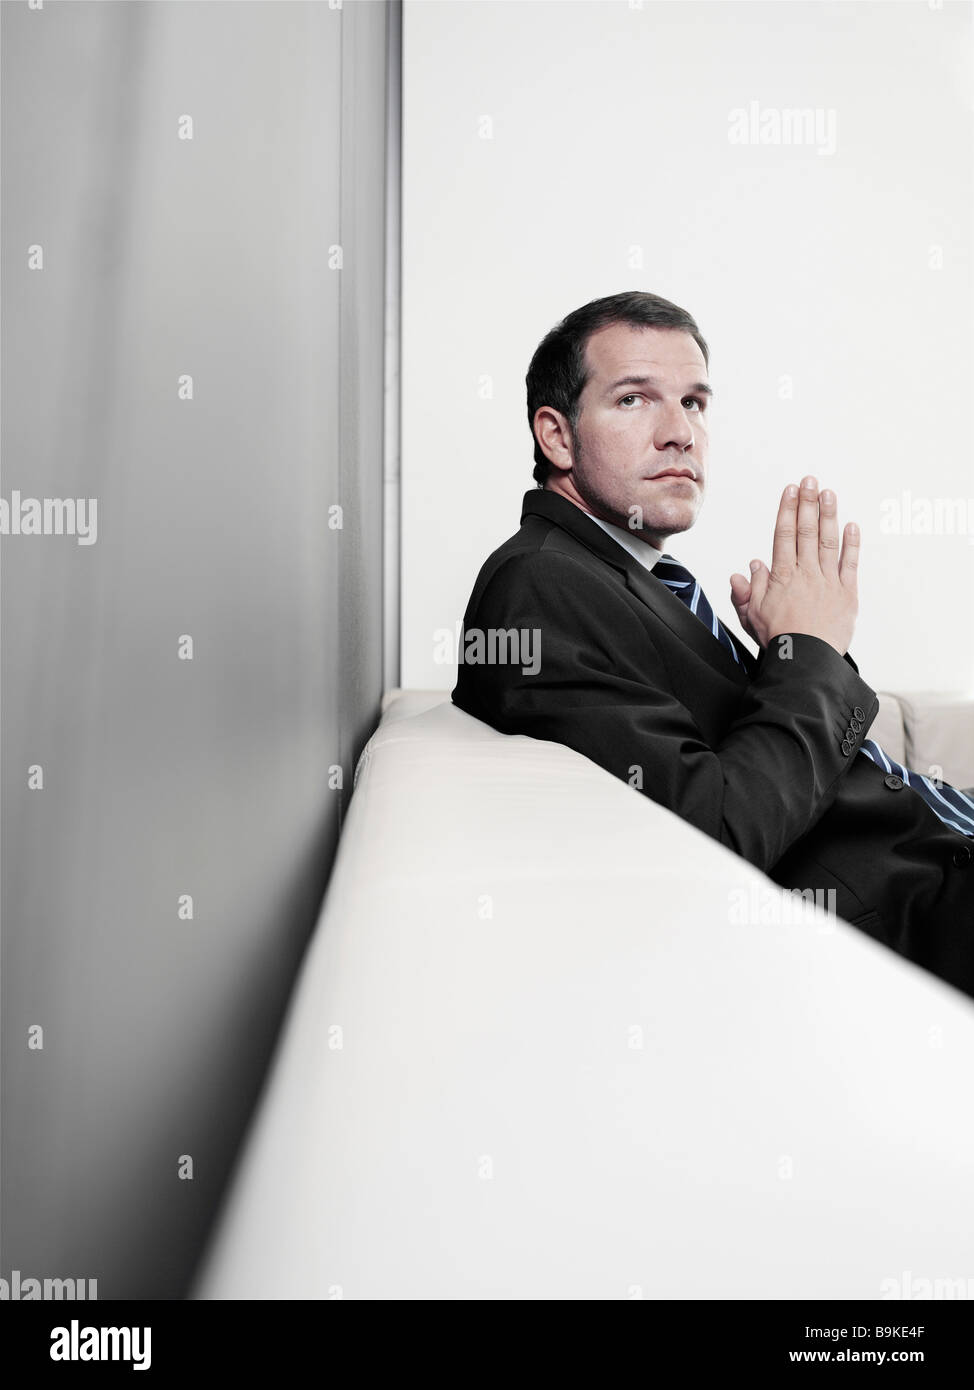 portrait of insecure looking businessman - Stock Image